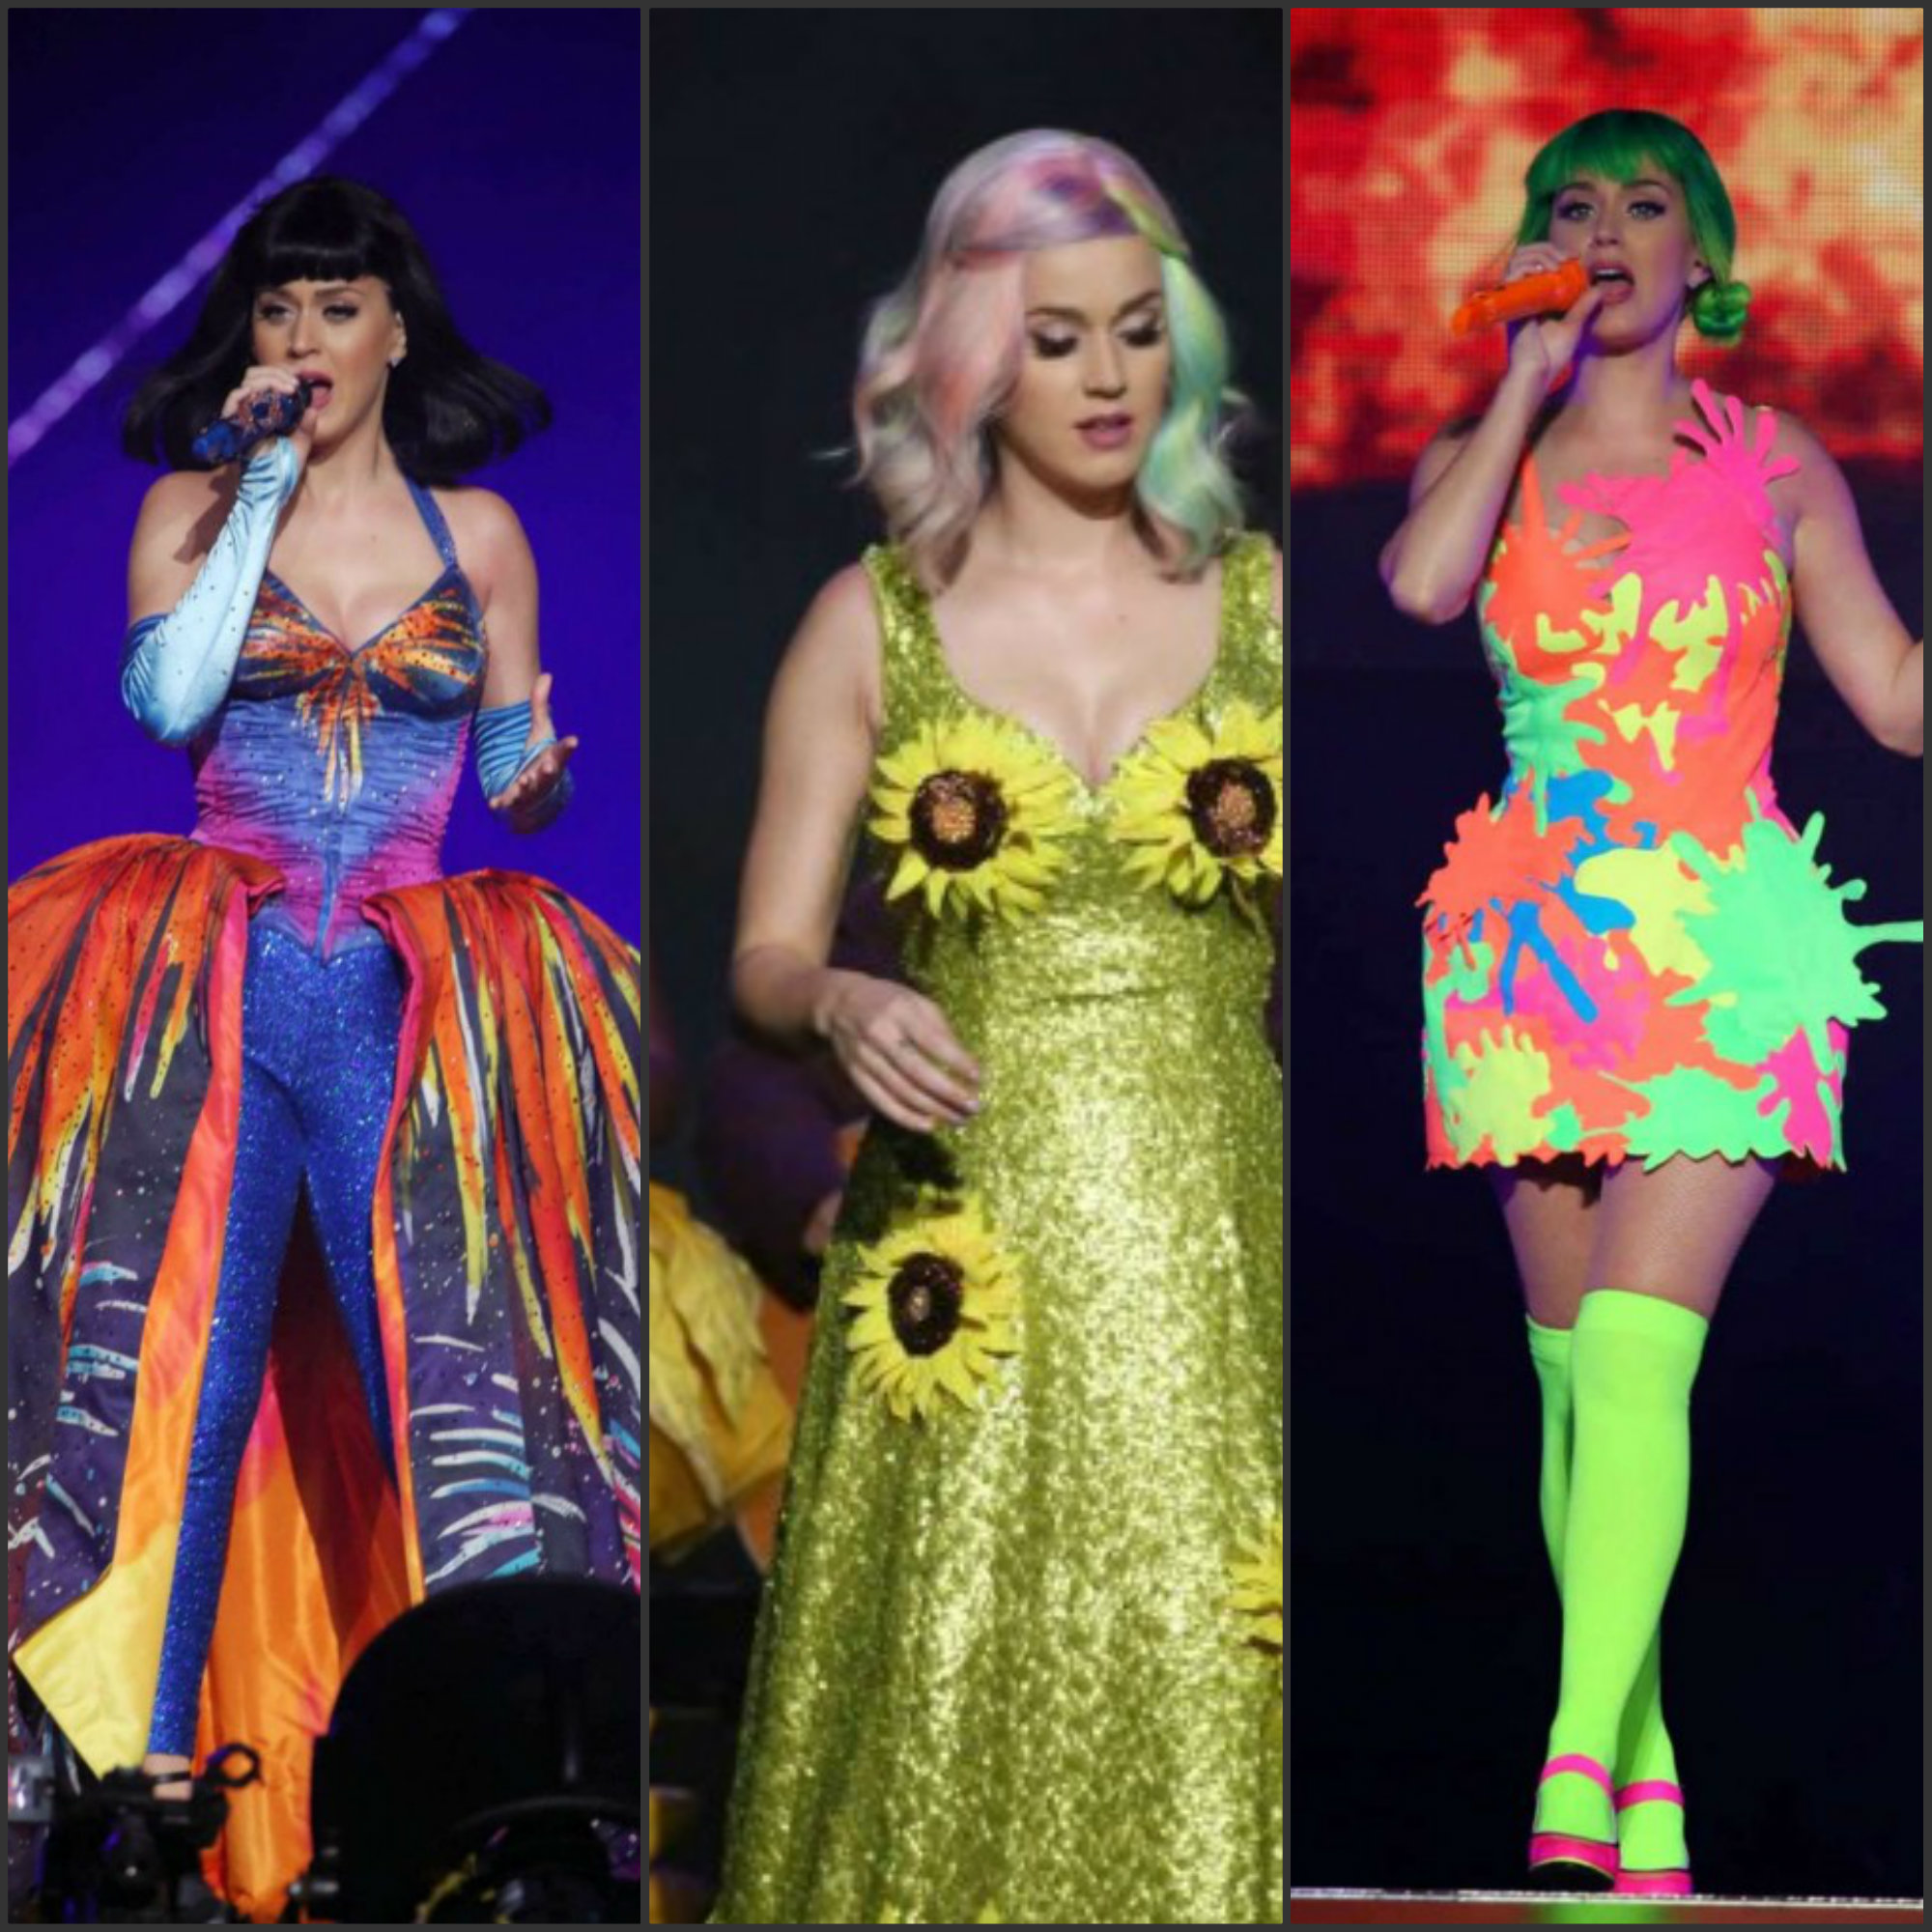 Katy-Perry-The-Prismatic-World-Tour-in-Guangzhou